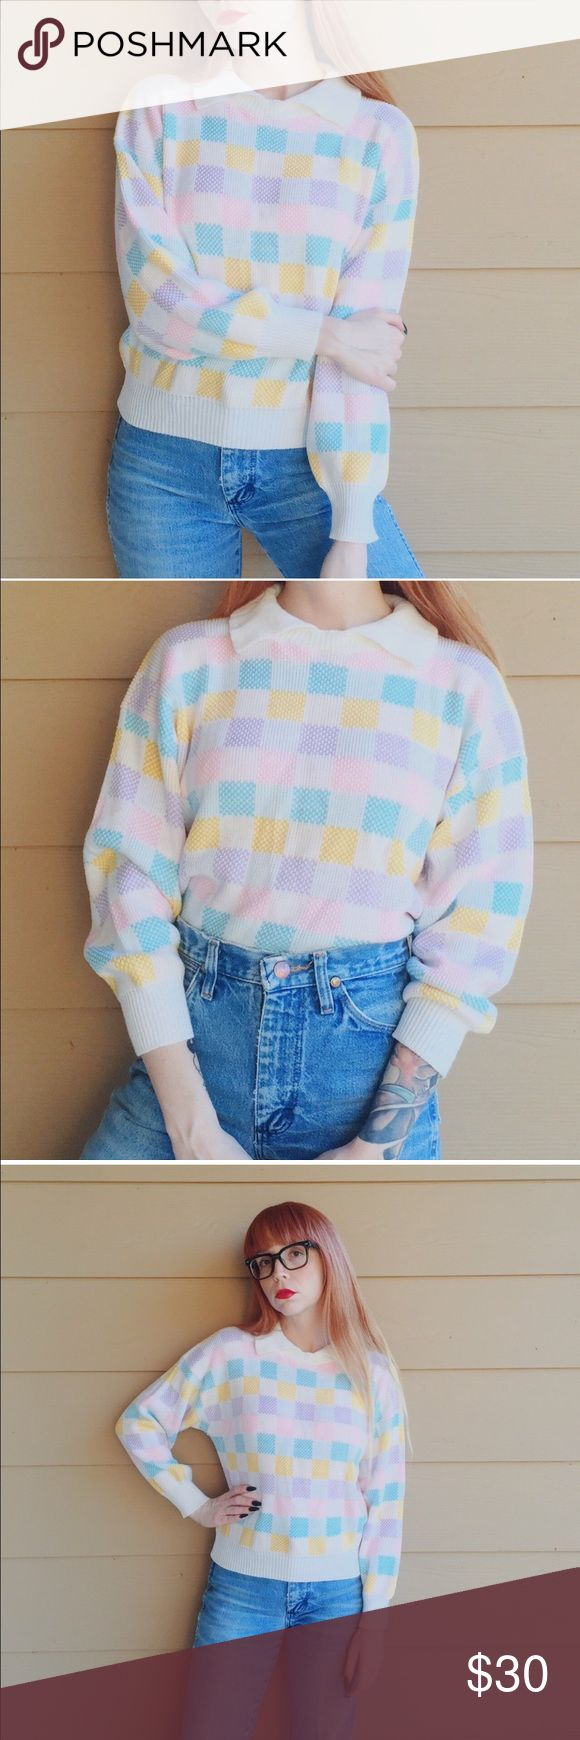 Vintage pastel plaid oversized knit sweater top I absolutely adore this pastel checkered retro vintage knit sweater top with the cutest little Oxford collar! Excellent condition for its age and so comfy! Reminds me of UNIF meets kawaii Vintage Sweaters Crew & Scoop Necks